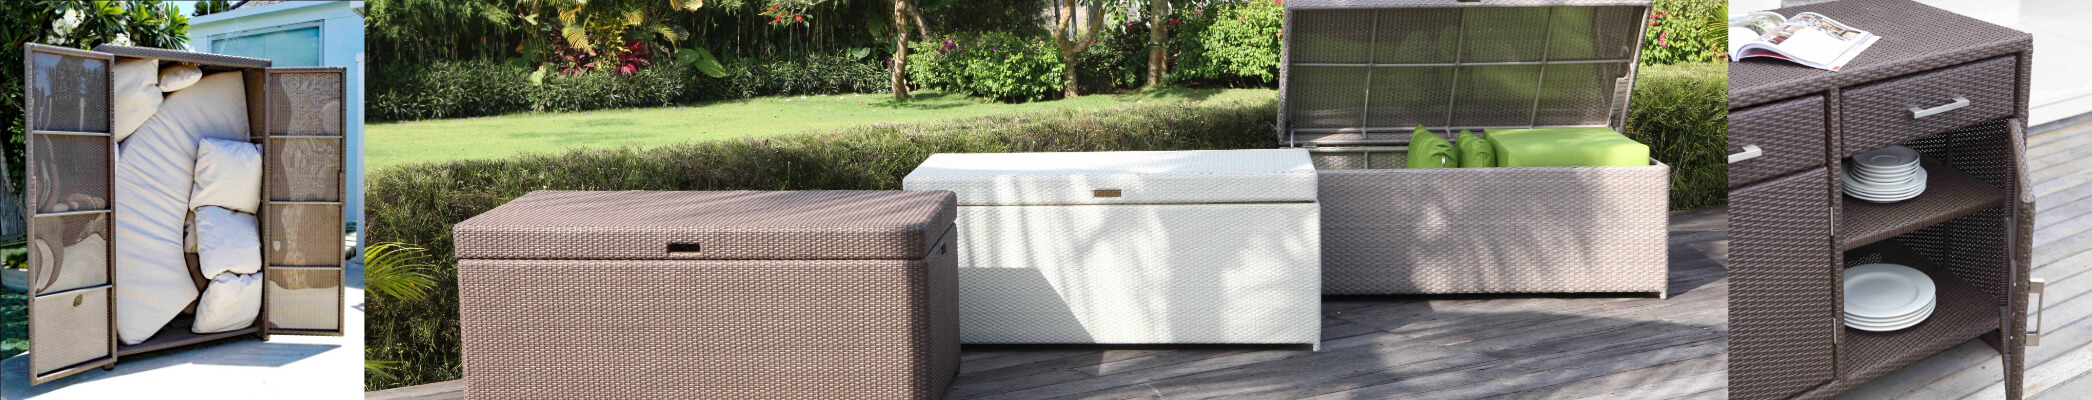 Can You Leave Rattan Furniture Outside Skyline Design